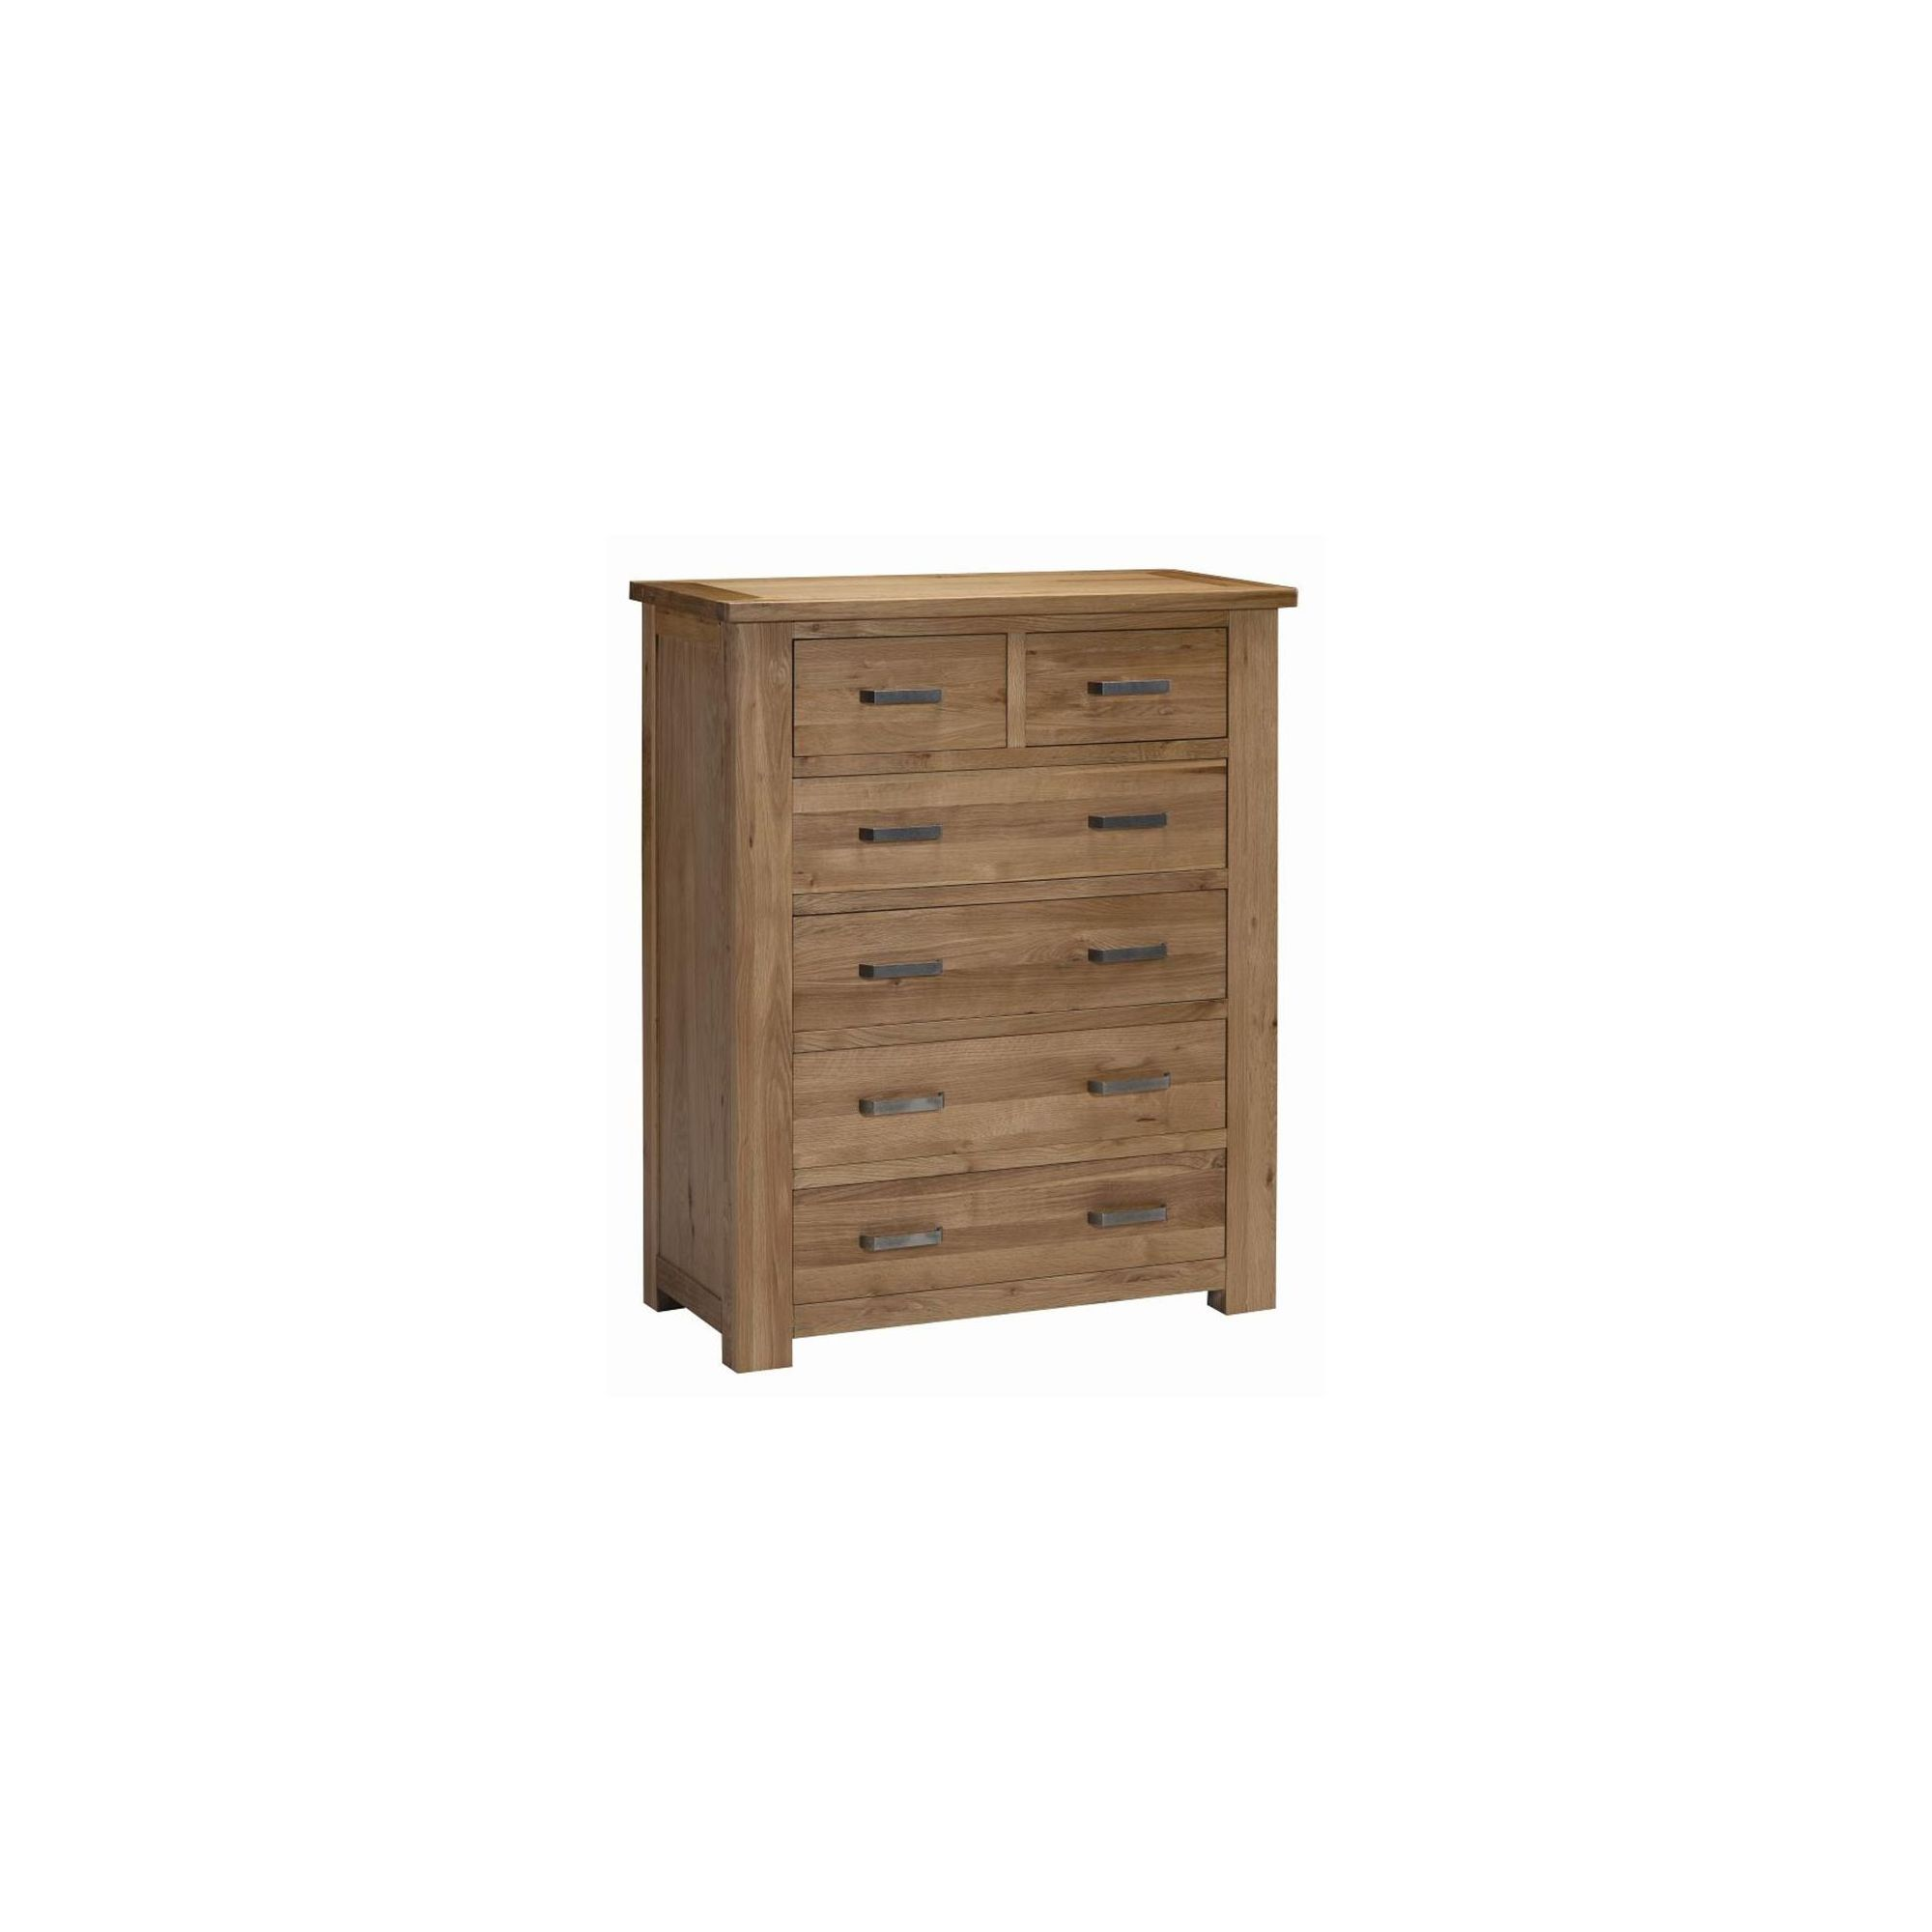 Kelburn Furniture Lyon 6 Drawer Chest at Tesco Direct